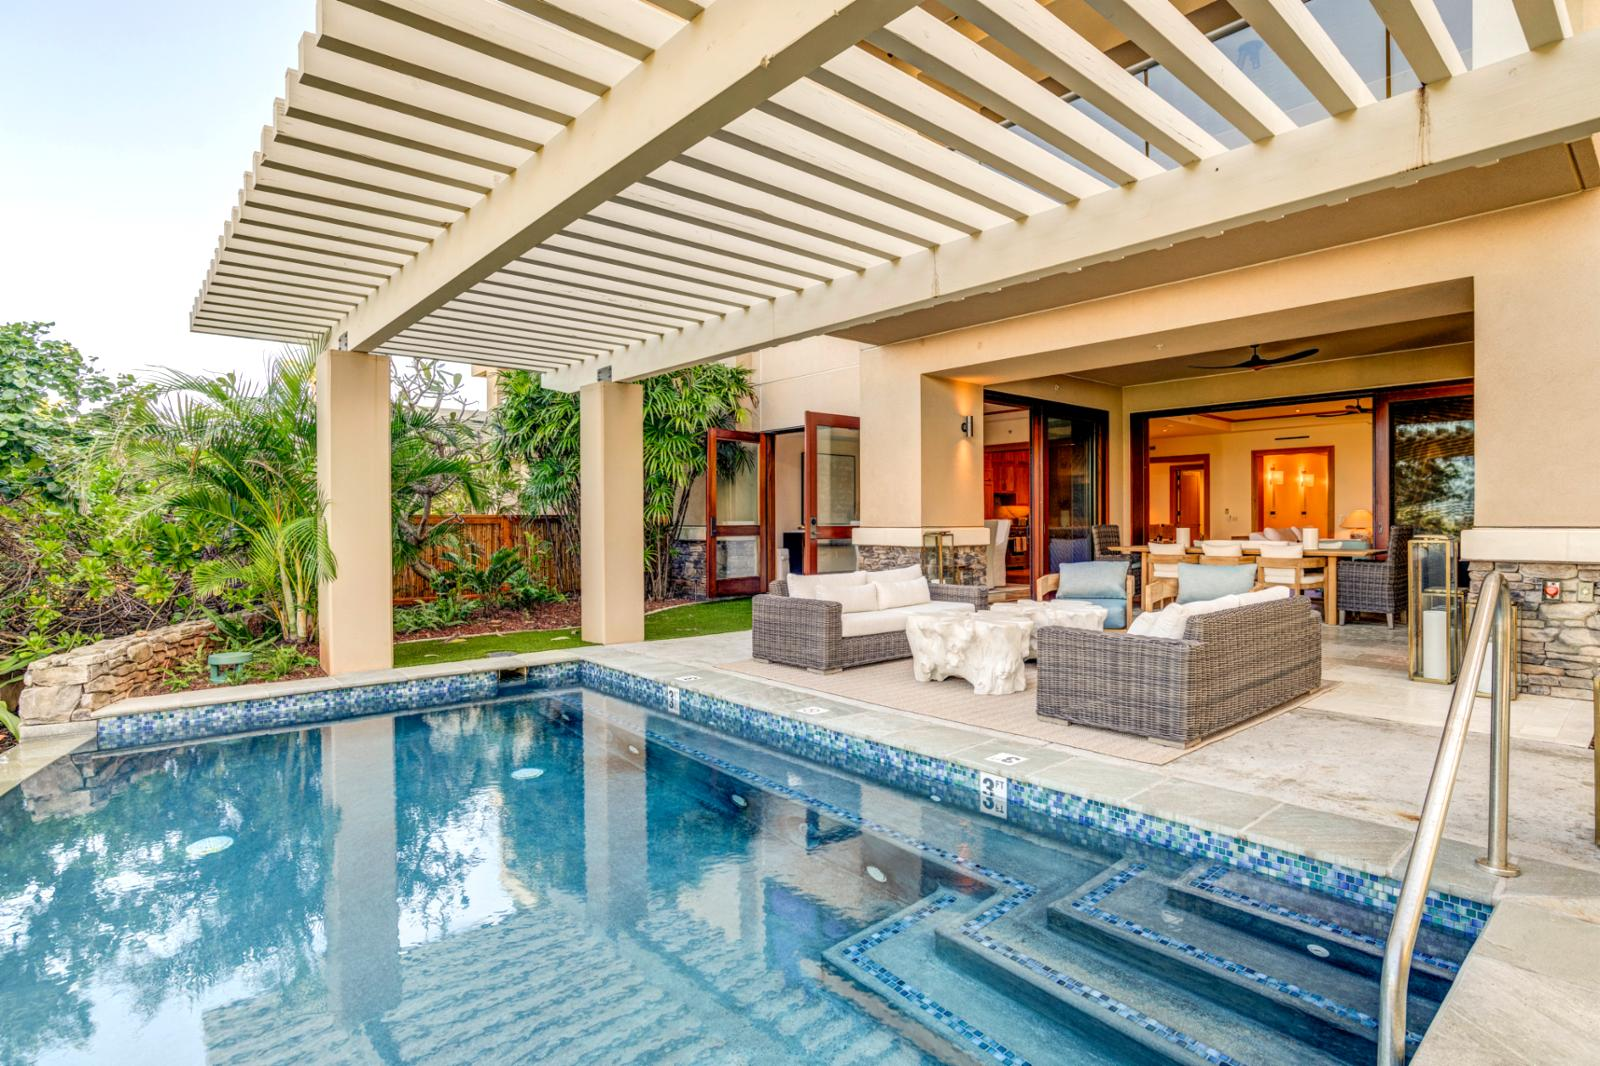 Private Pool and spa for your use. Currently the only villa at Montage with a private pool/spa.